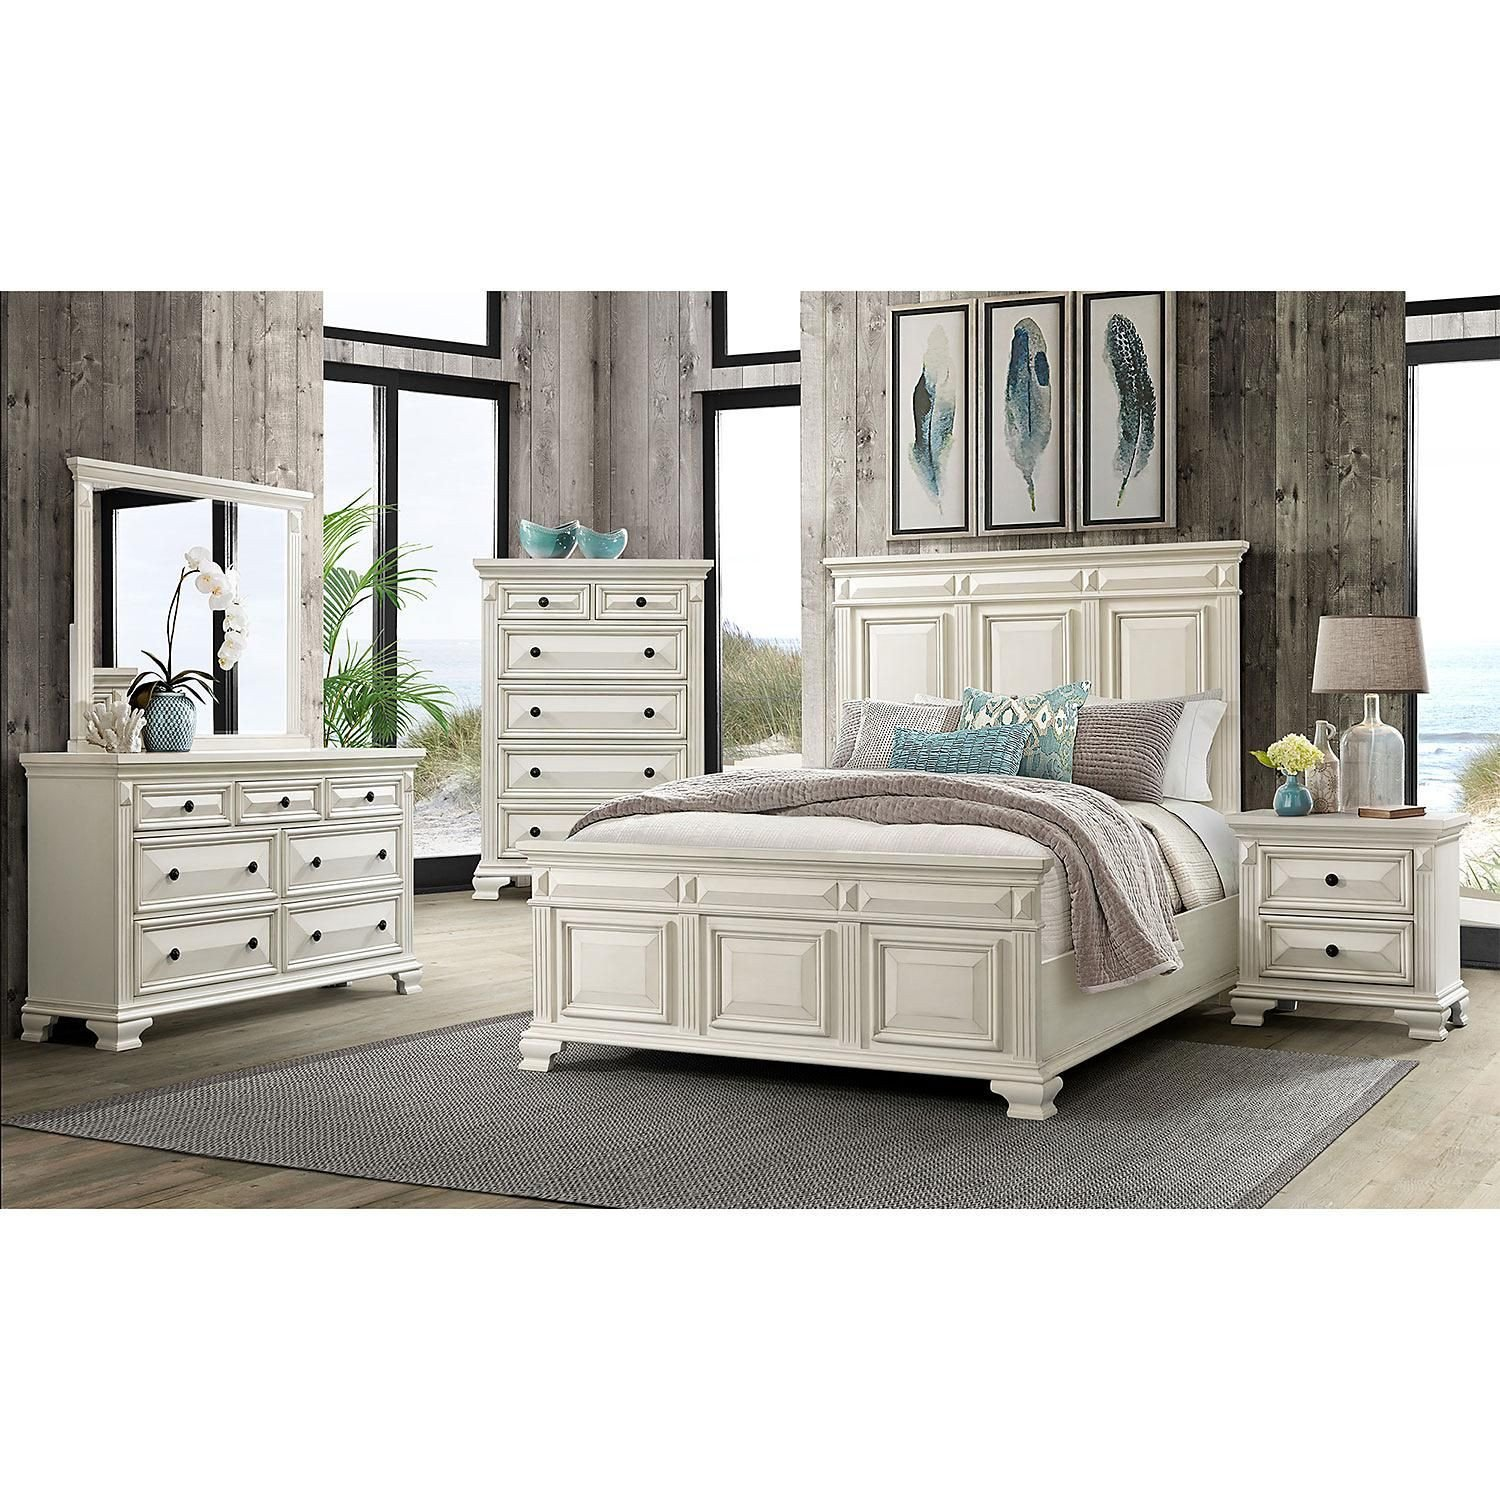 King Size Bedroom Set Best Of $1599 00 society Den Trent Panel 6 Piece King Bedroom Set